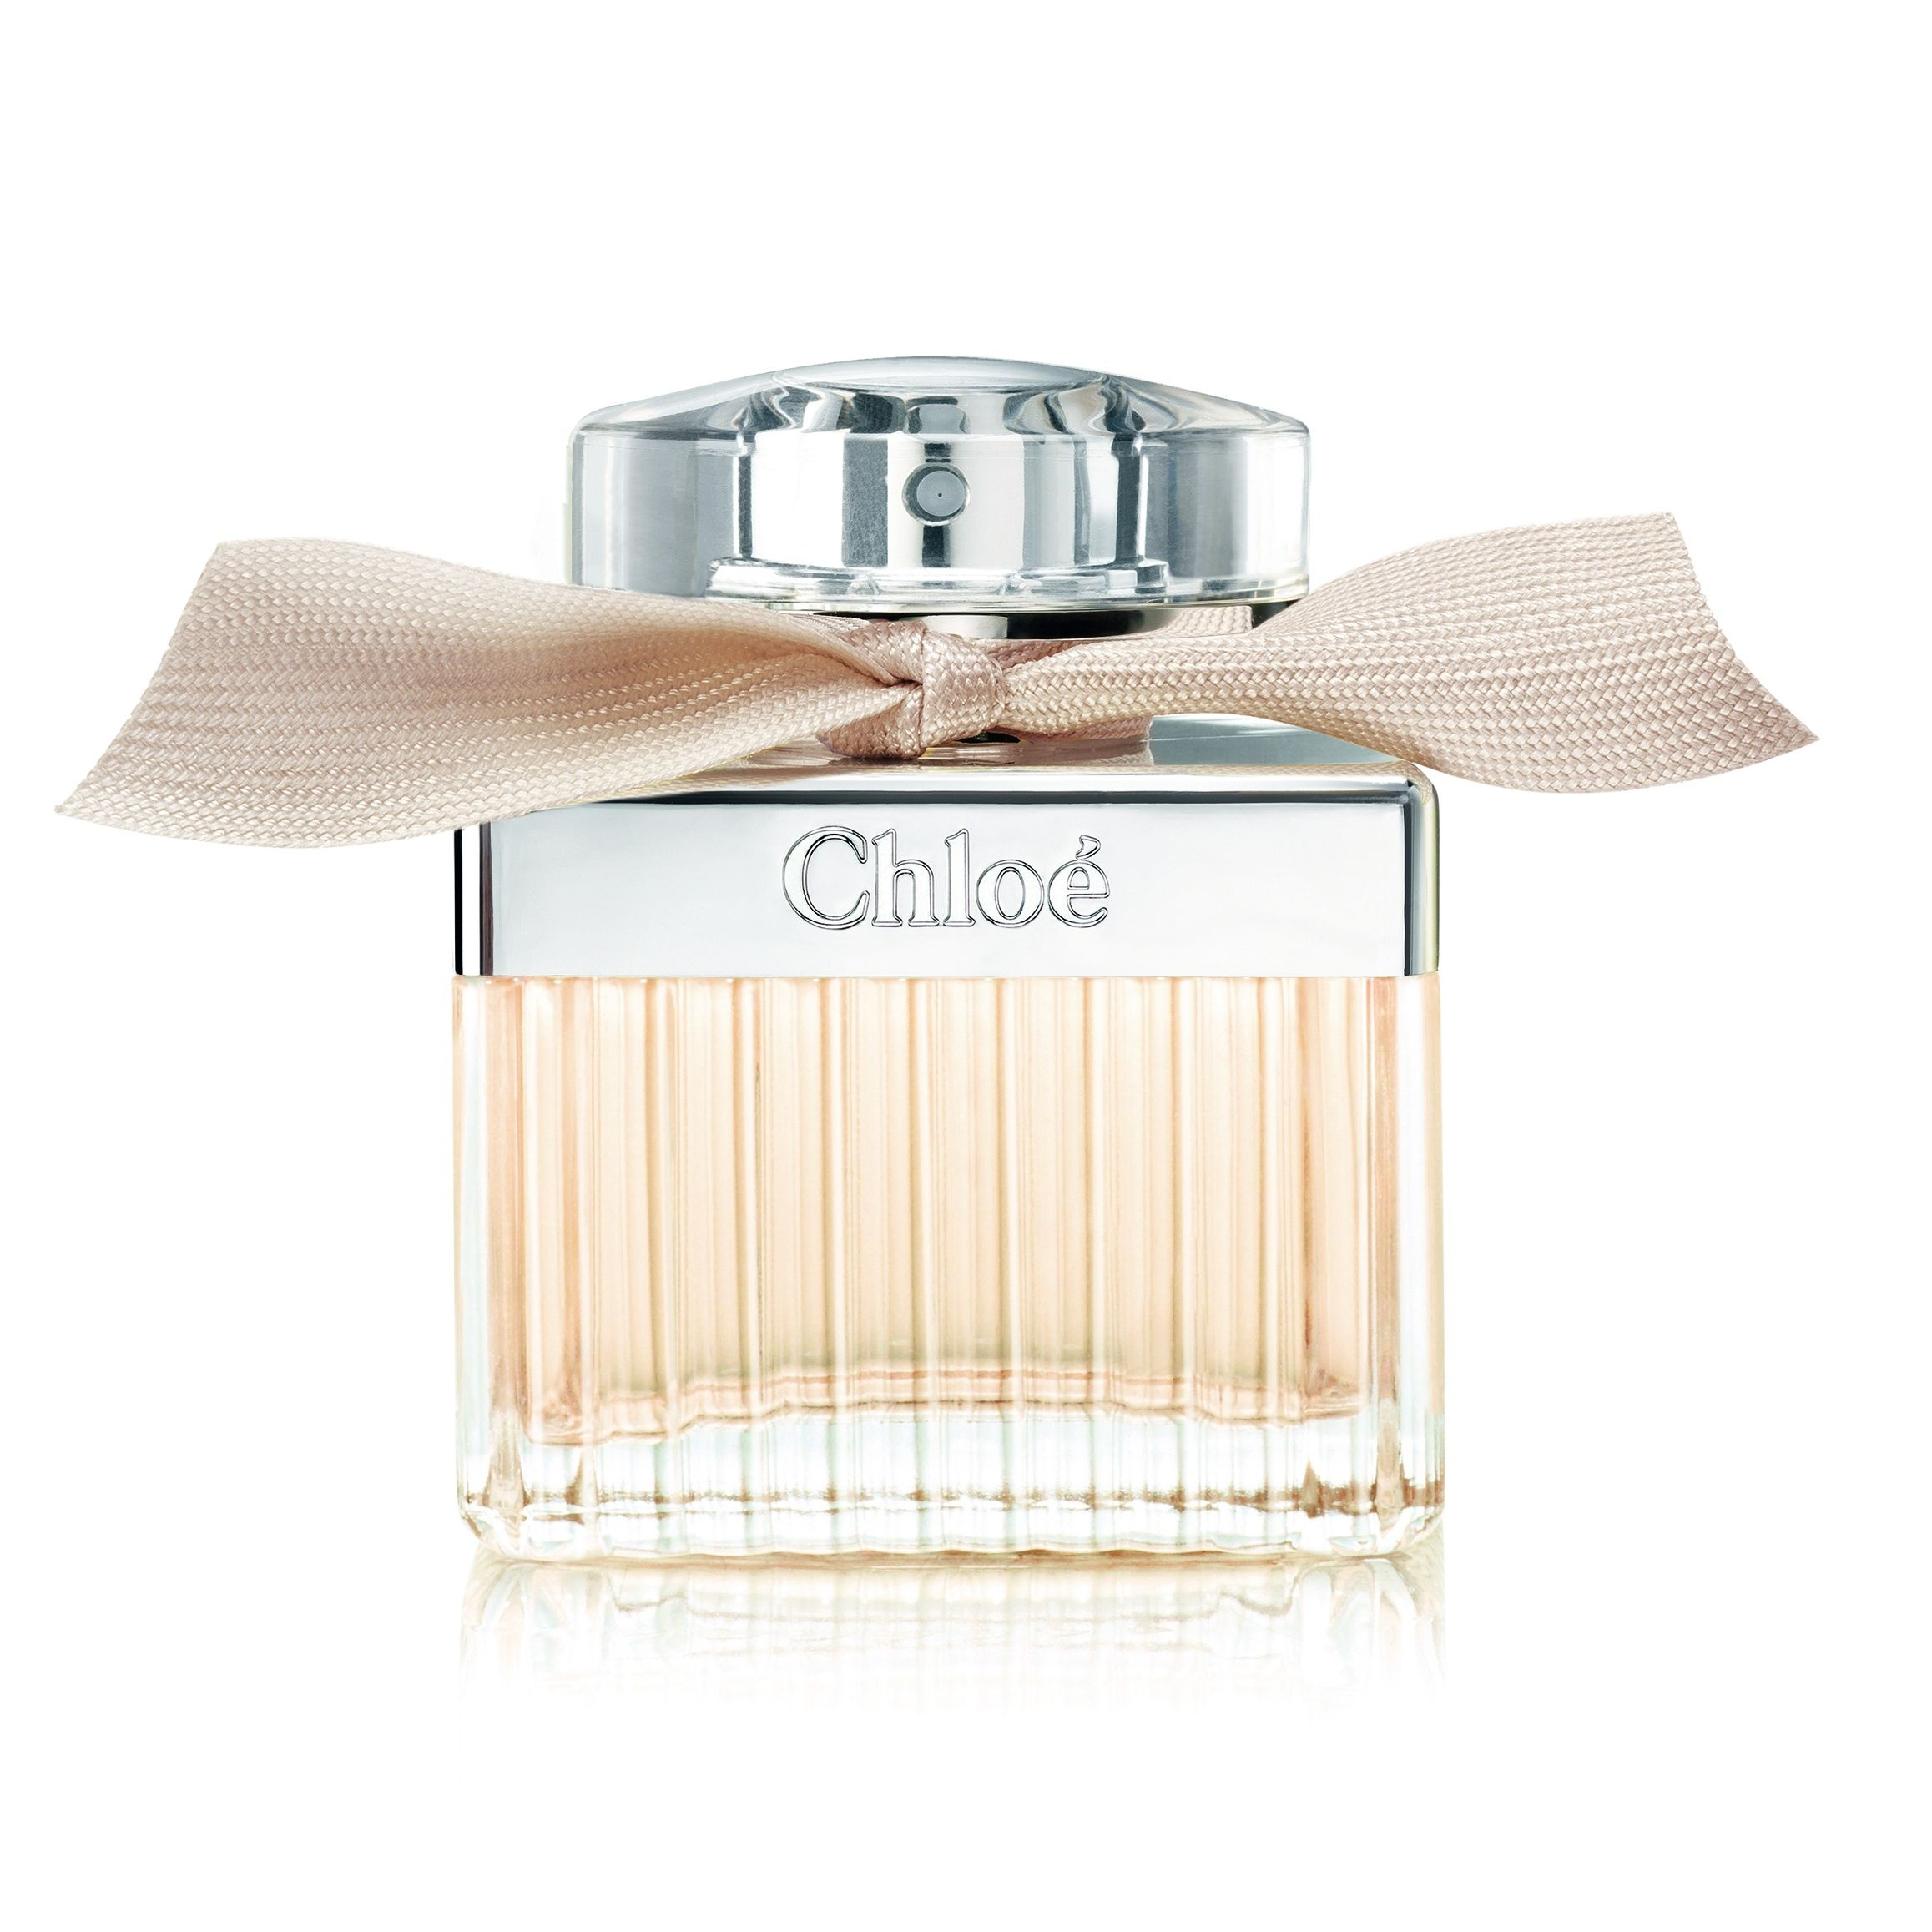 Chloe Signature Eau de Toilette 2015 75 ml